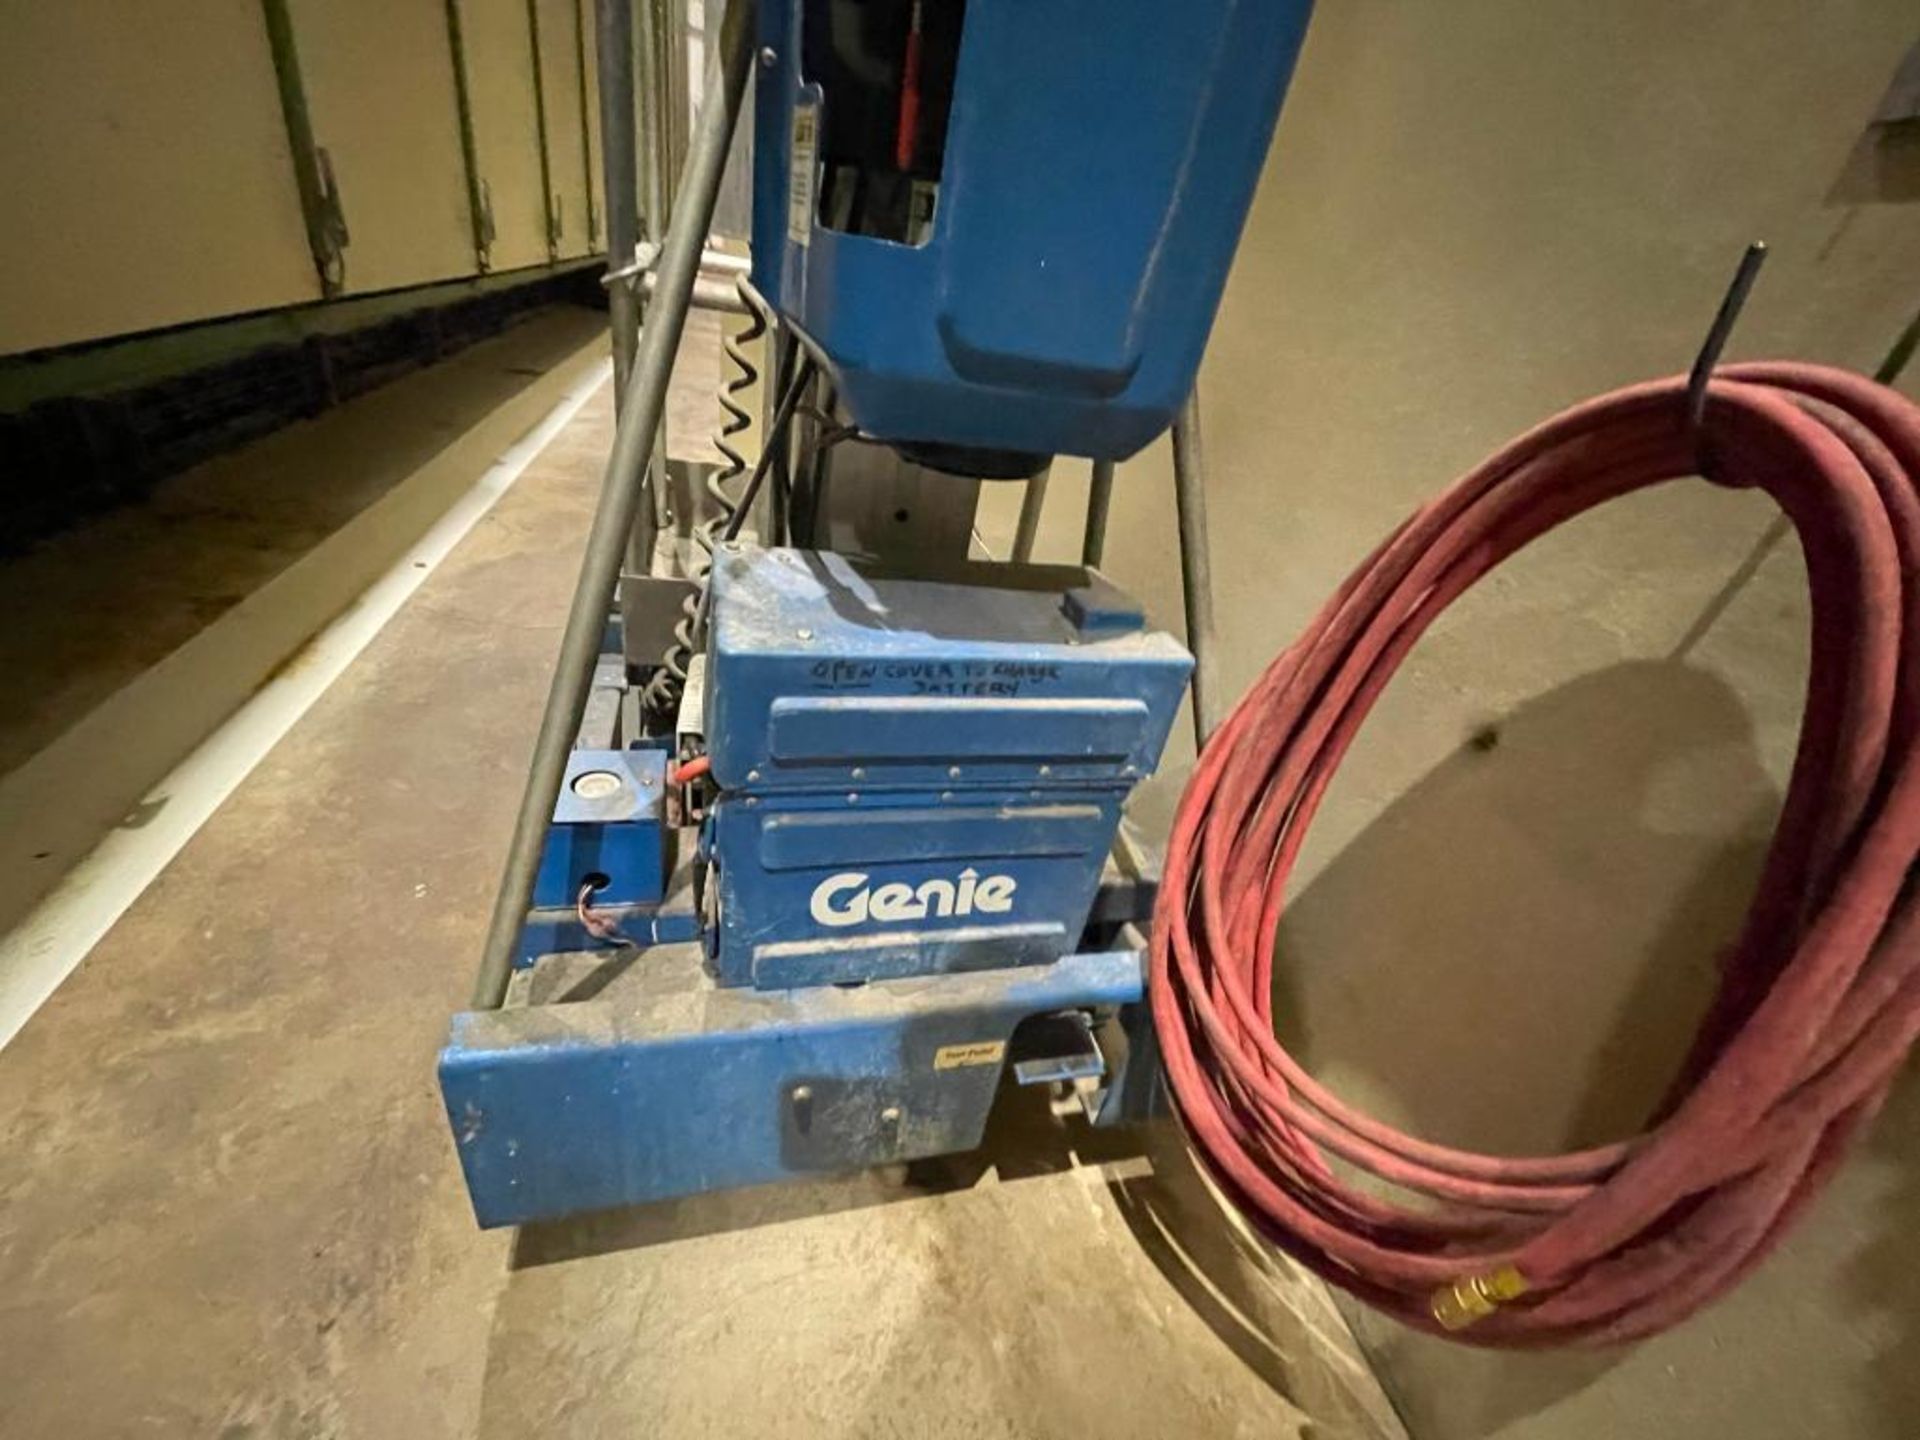 Genie personnel lift - Image 14 of 14